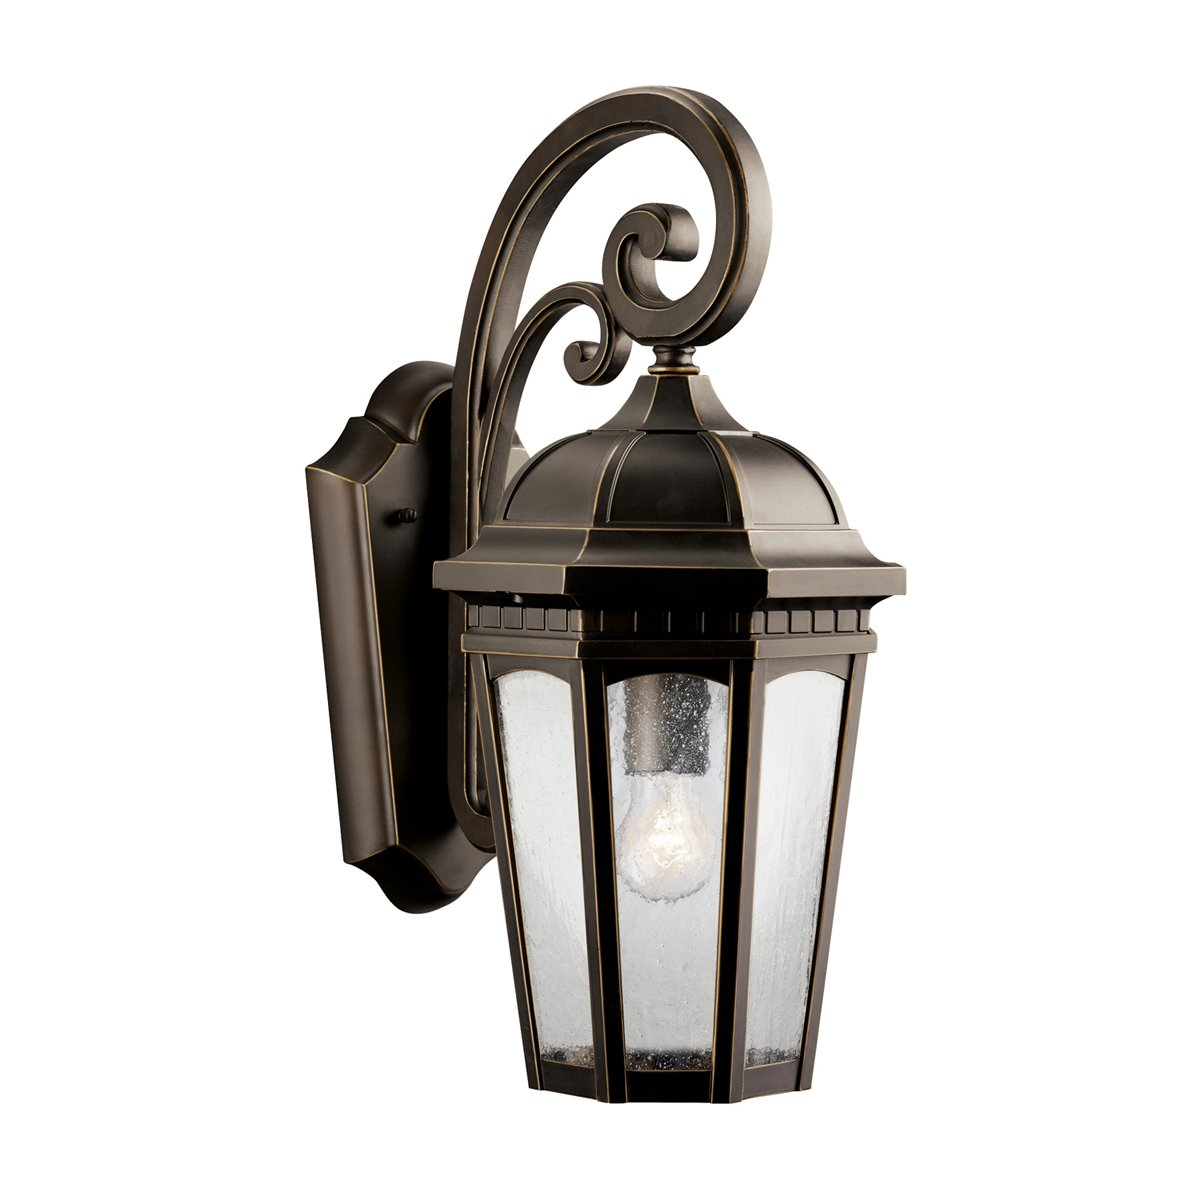 kichler lighting 9033rz courtyard 1light outdoor wall mount lantern rubbed bronze with clear seedy glass wall porch lights amazoncom - Kichler Outdoor Lighting